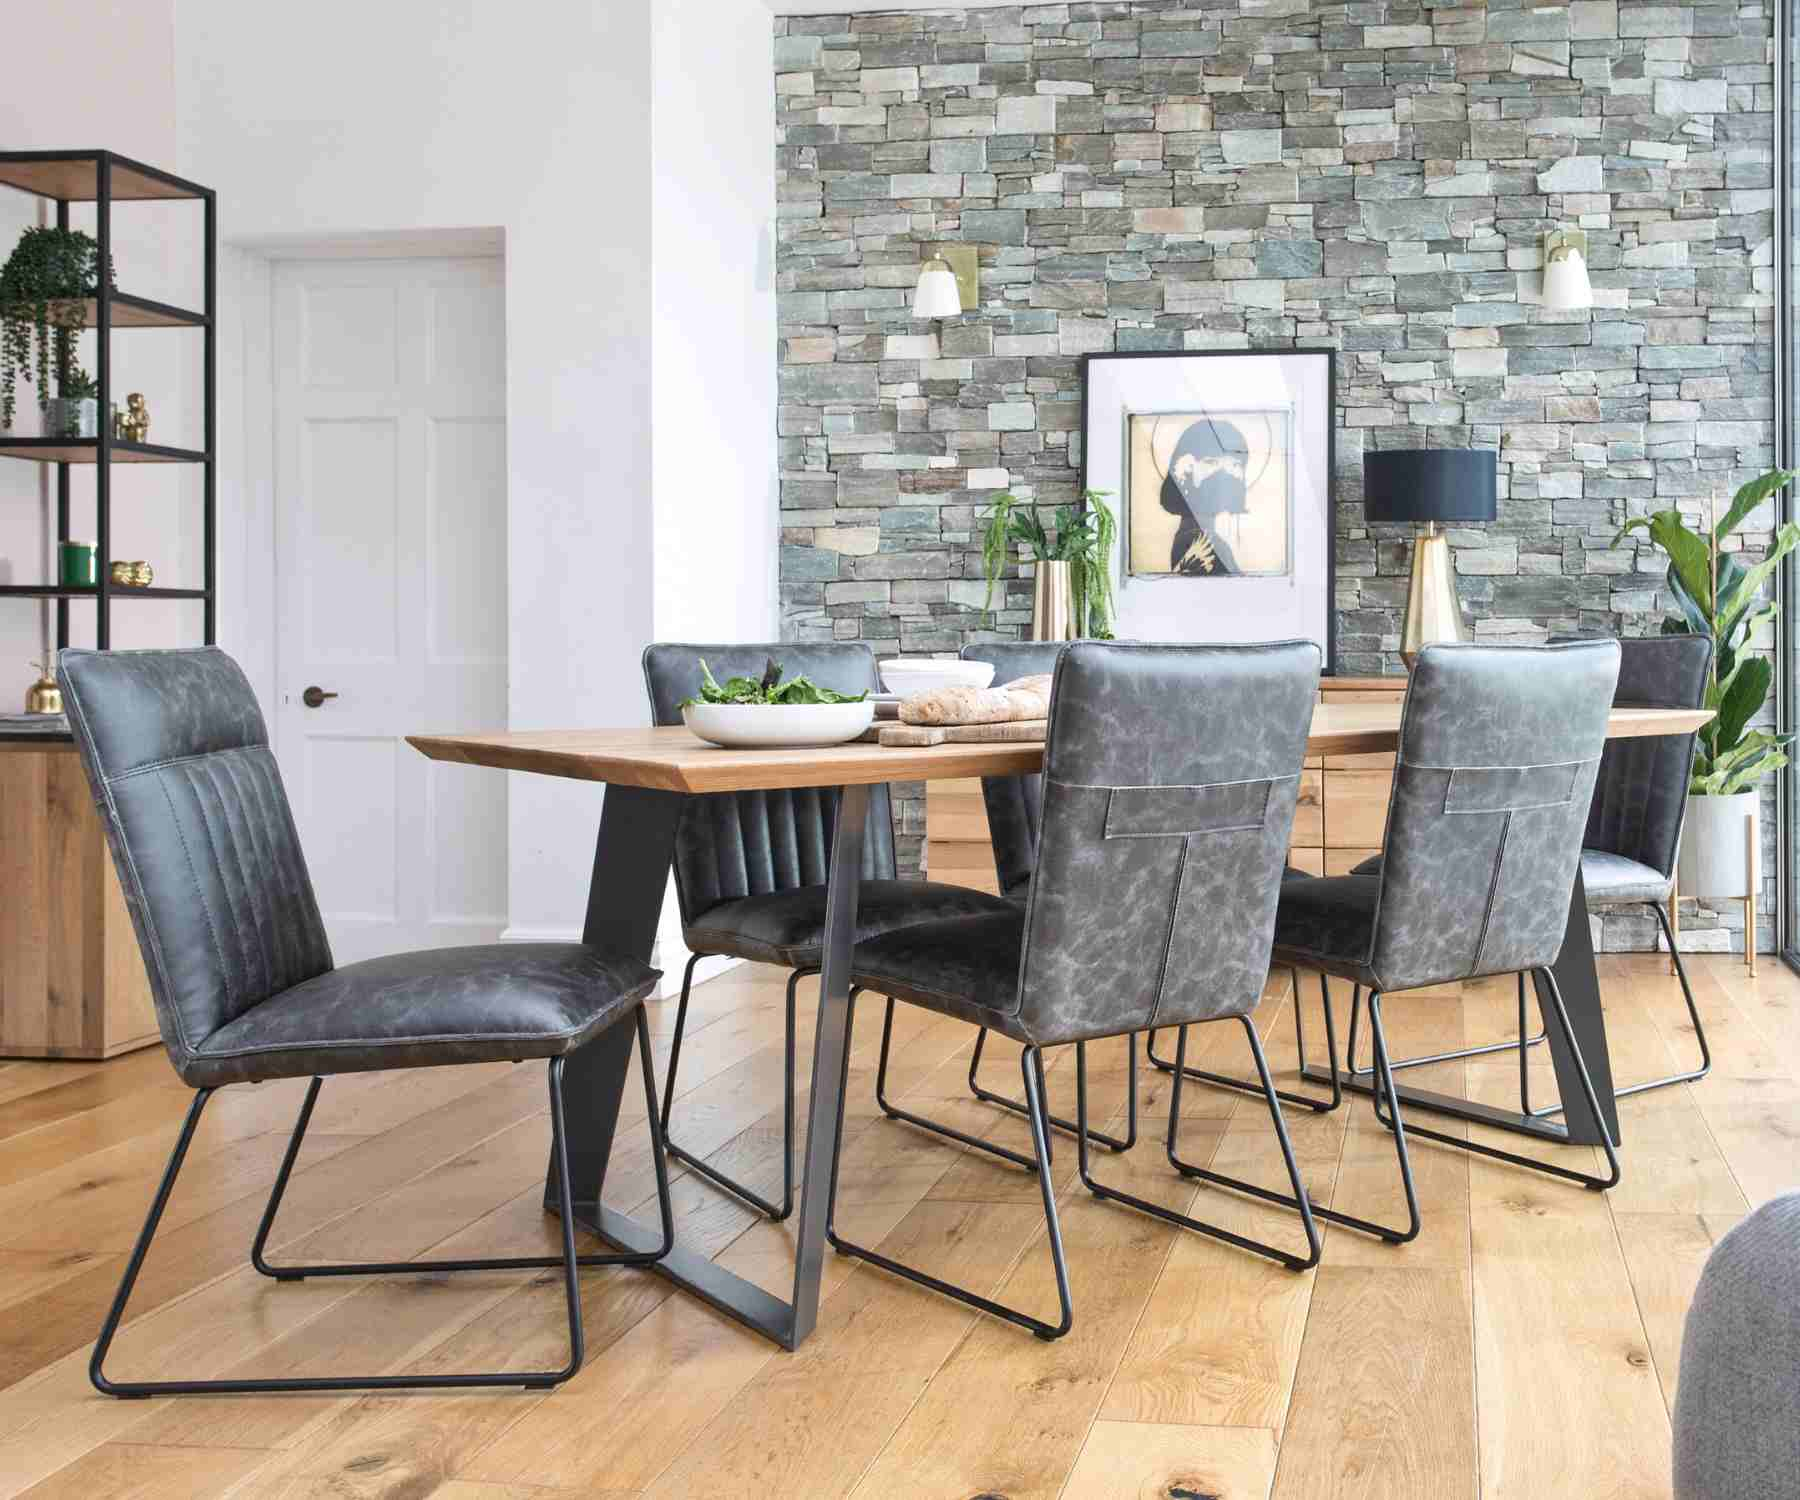 Grey faux leather dining chairs with industrial table